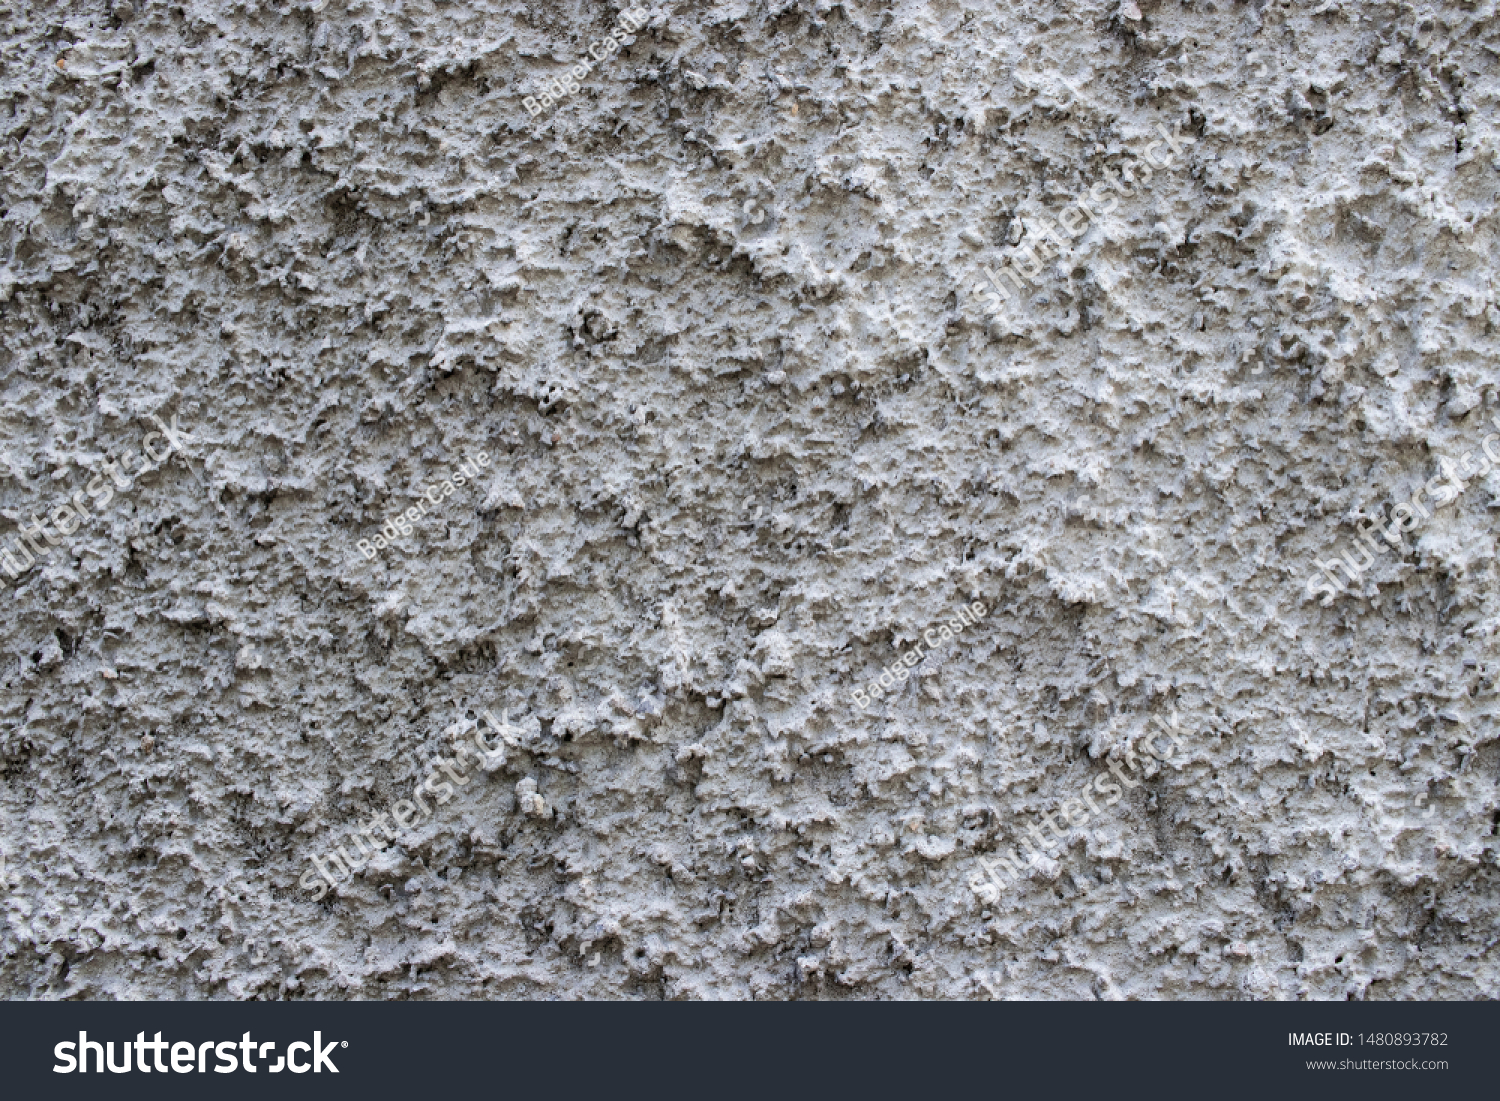 White stucco concrete wall surface texture background surface grunge grit detail #1480893782